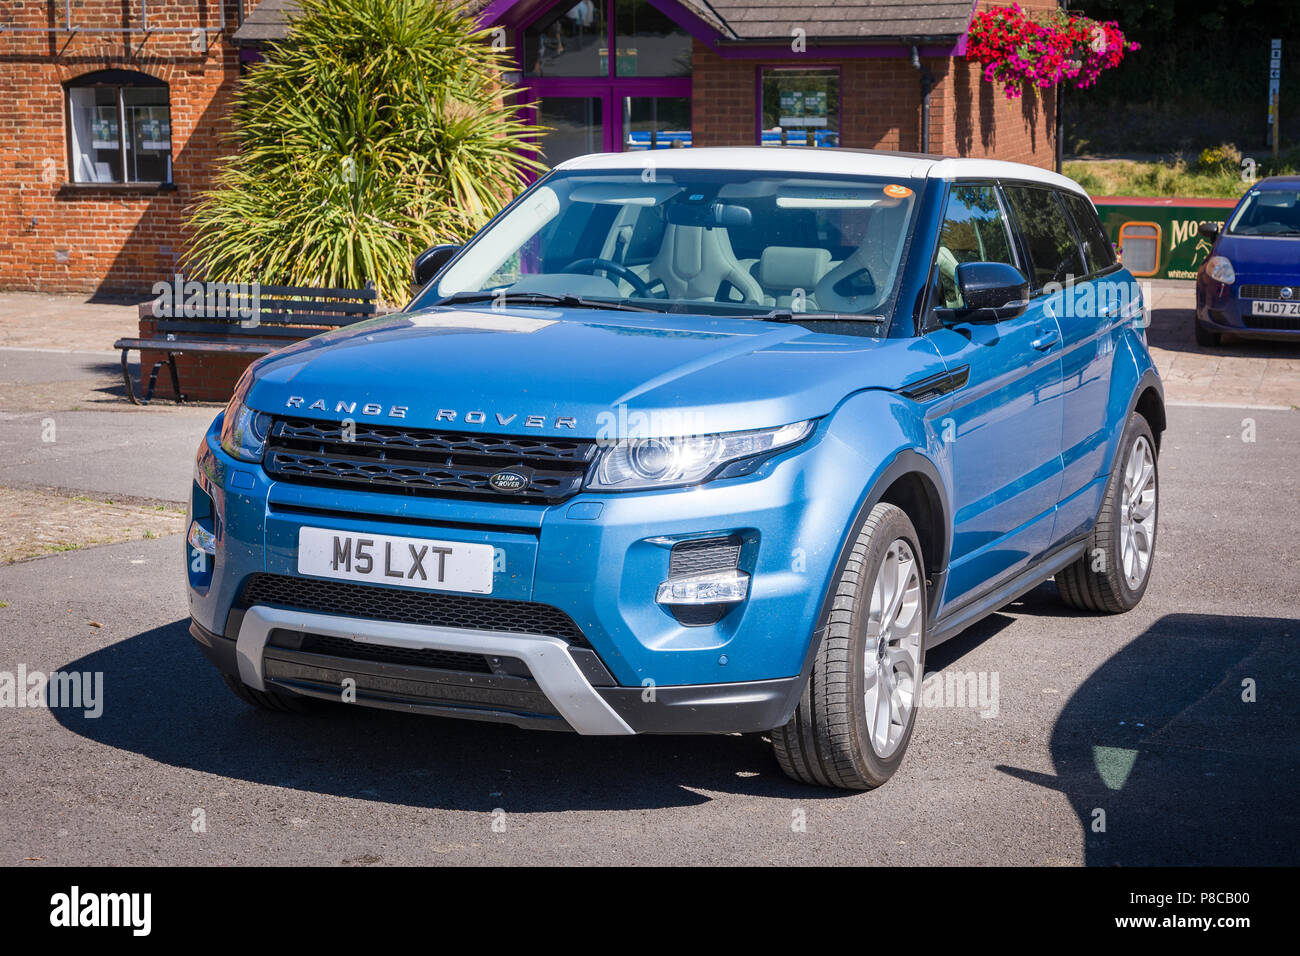 British Range Rover By Land Rover Model Evoque Sd4 In A Public Car